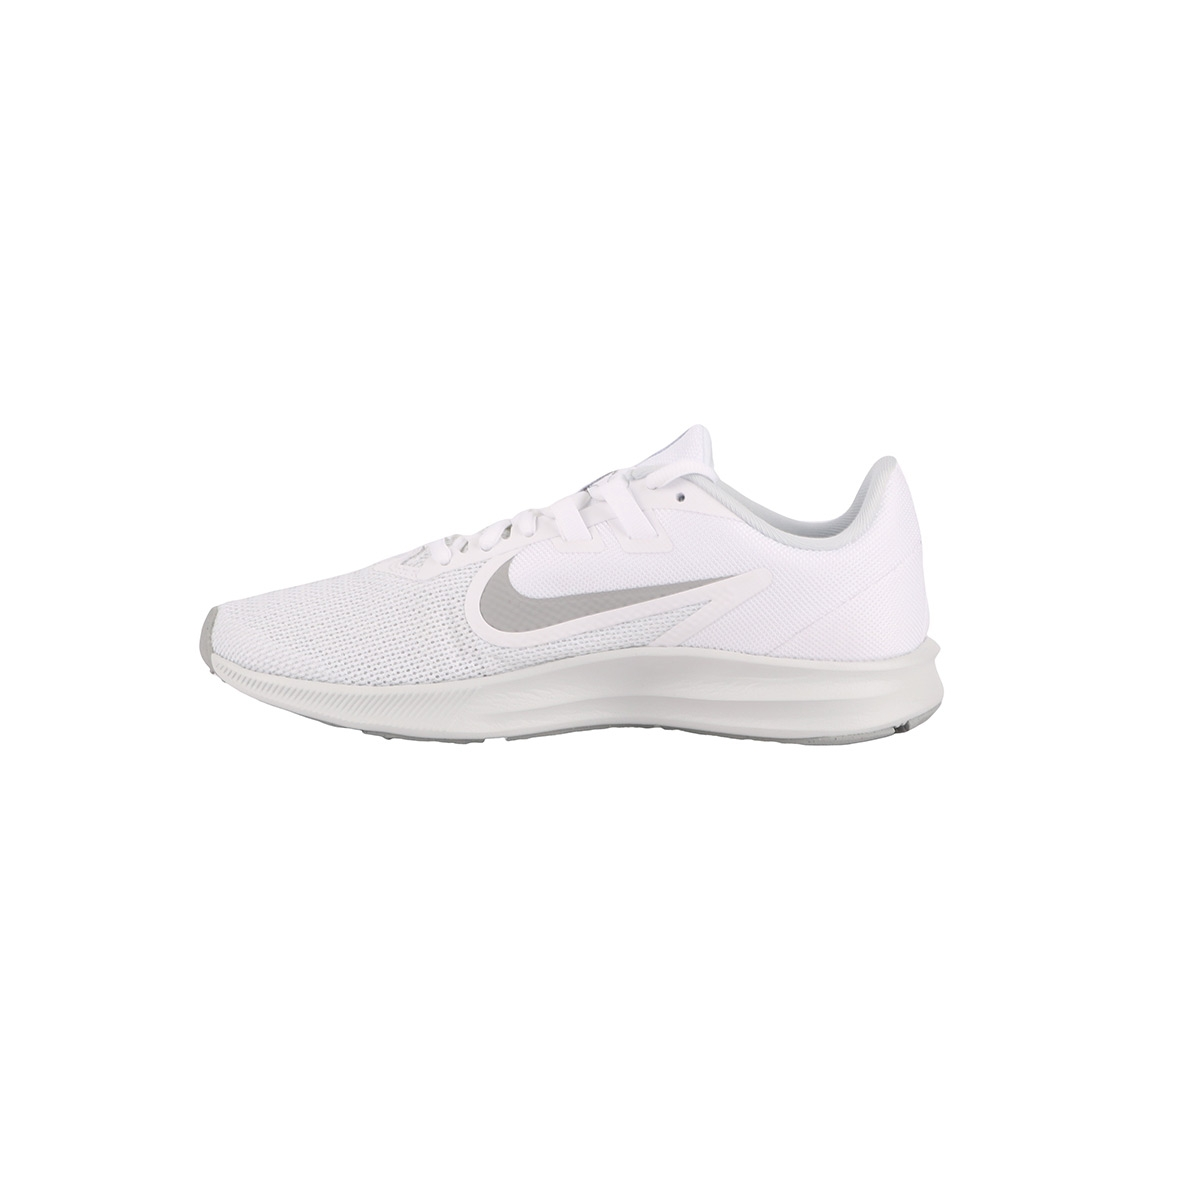 Nike Zapatillas Wmns Downshifter 9 White Wolf Grey Blanco Mujer